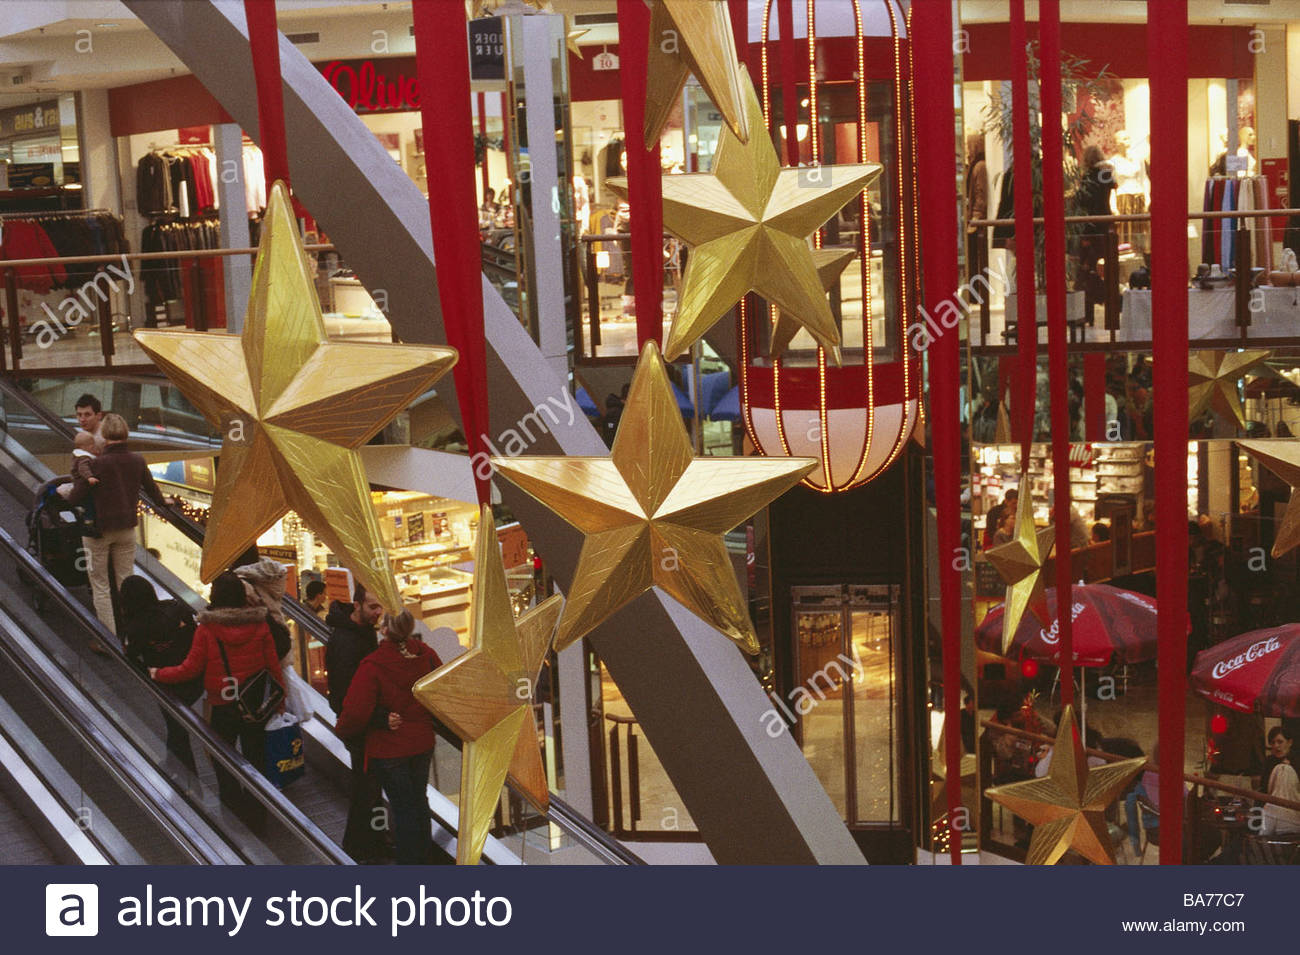 How to start a christmas decor business - Shopping Center Christmas Decoration Stars Golden Escalator Detail No Property Release Business Stores Sale Retails Christmas